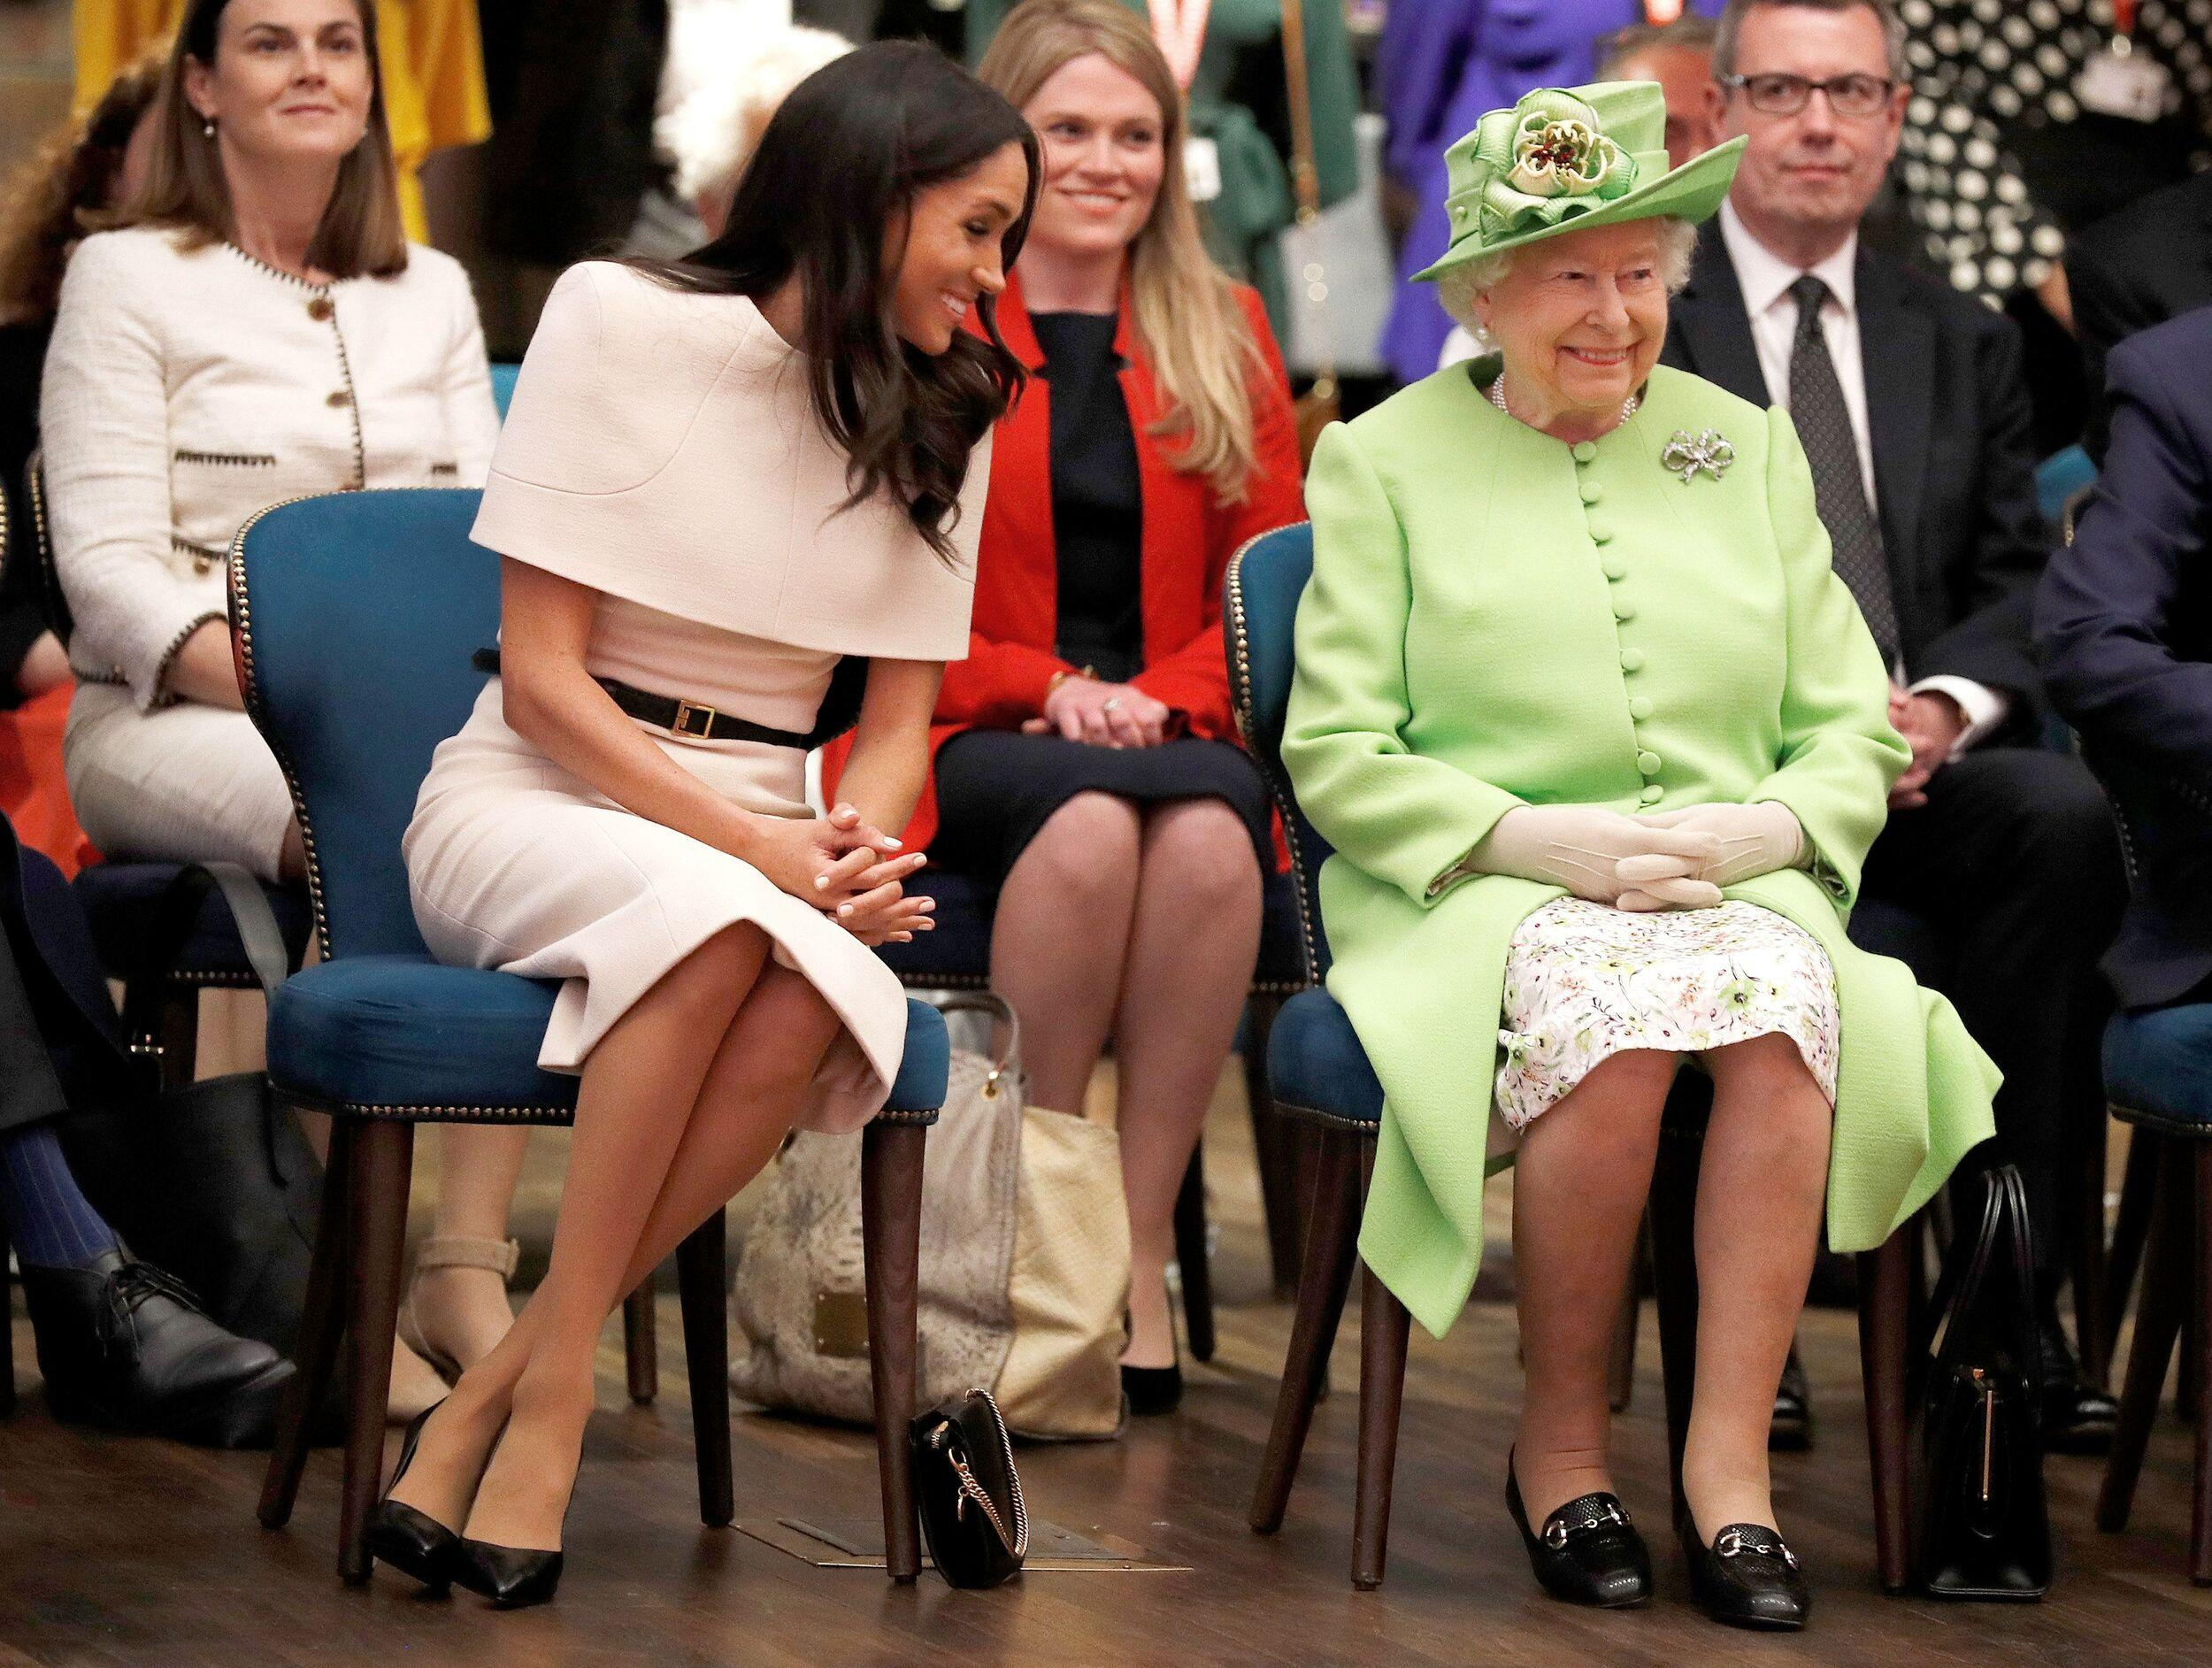 TOPSHOT - Britain's Queen Elizabeth II and Meghan, Duchess of Sussex gesture during their visit to the Storyhouse in Chester, Cheshire on June 14, 2018. (Photo by PHIL NOBLE / POOL / AFP)        (Photo credit should read PHIL NOBLE/AFP/Getty Images)